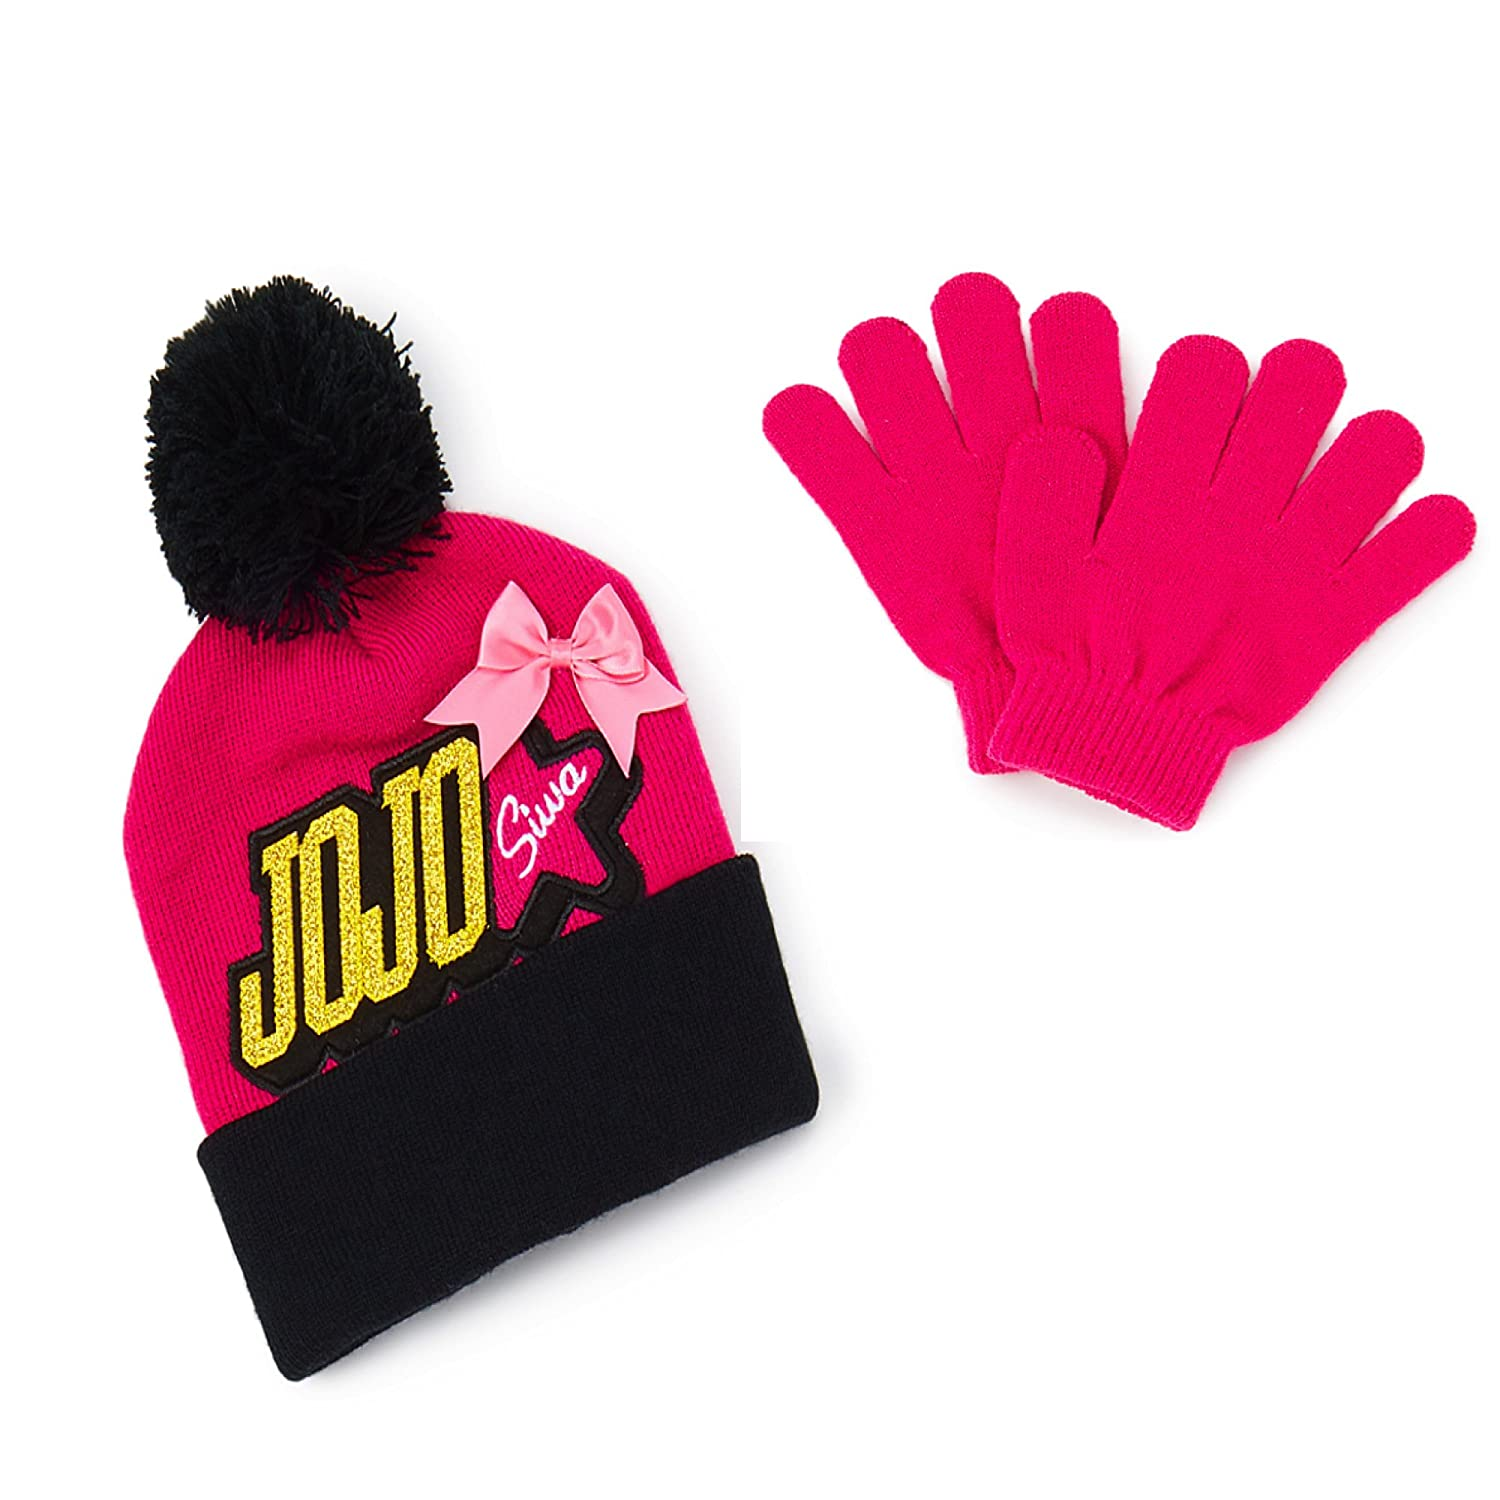 Nickelodeon JoJo Siwa Girls' Beanie/Knit Hat & Glove Set